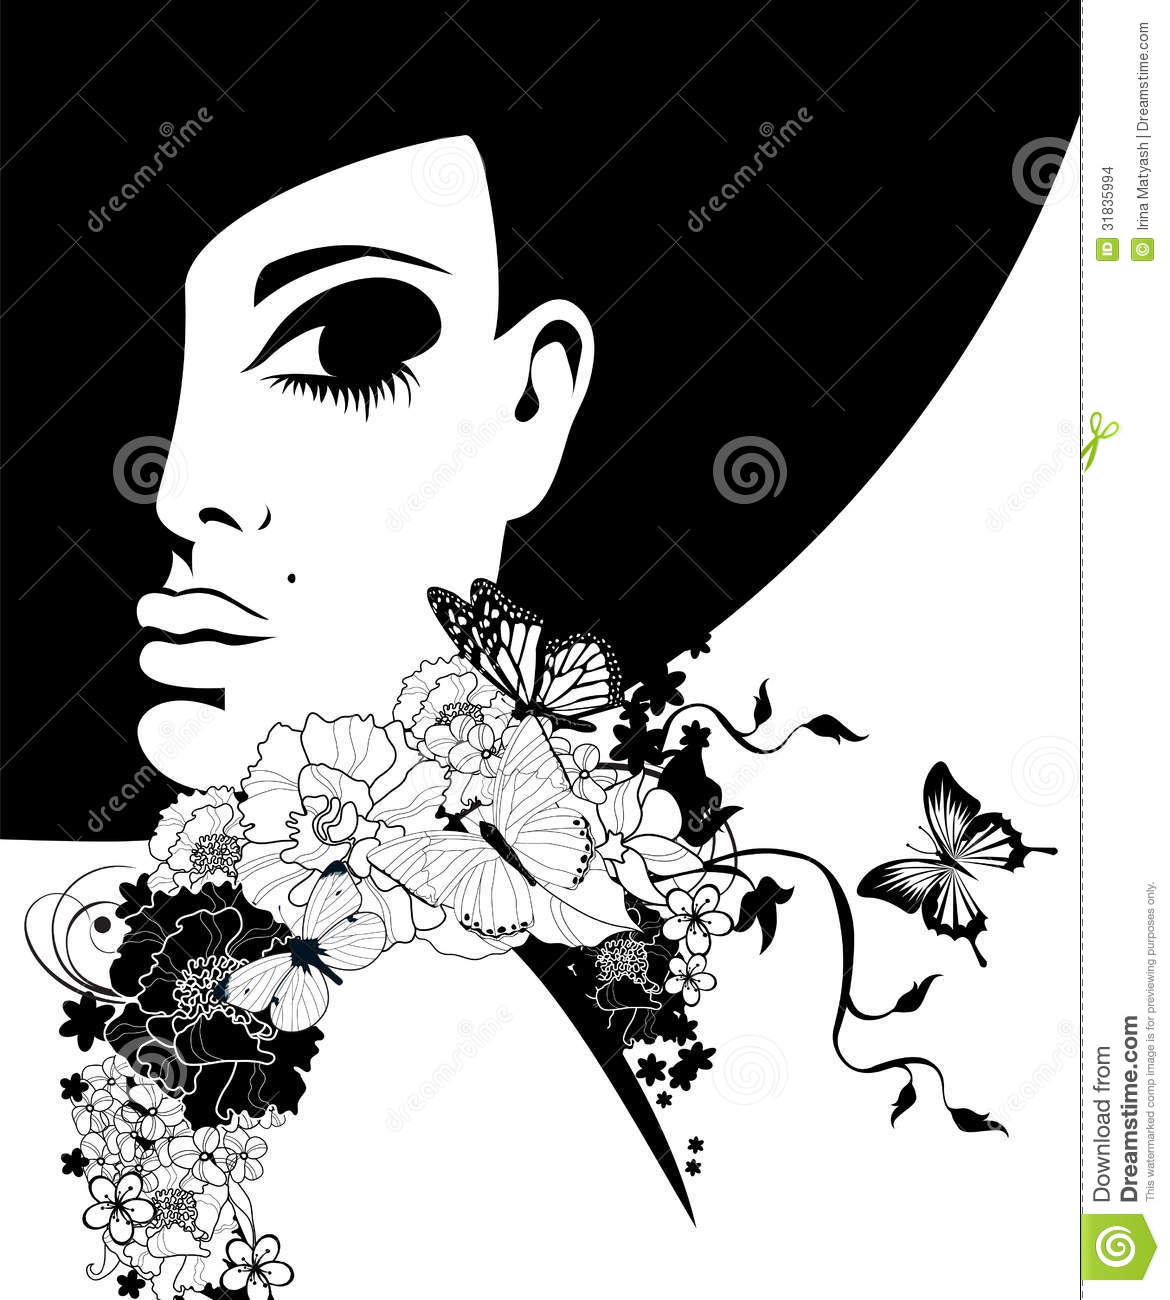 Black Flower Silhouette Stock Vector Illustration Of: Woman In A Black Hat With Flowers And Butterflies Stock